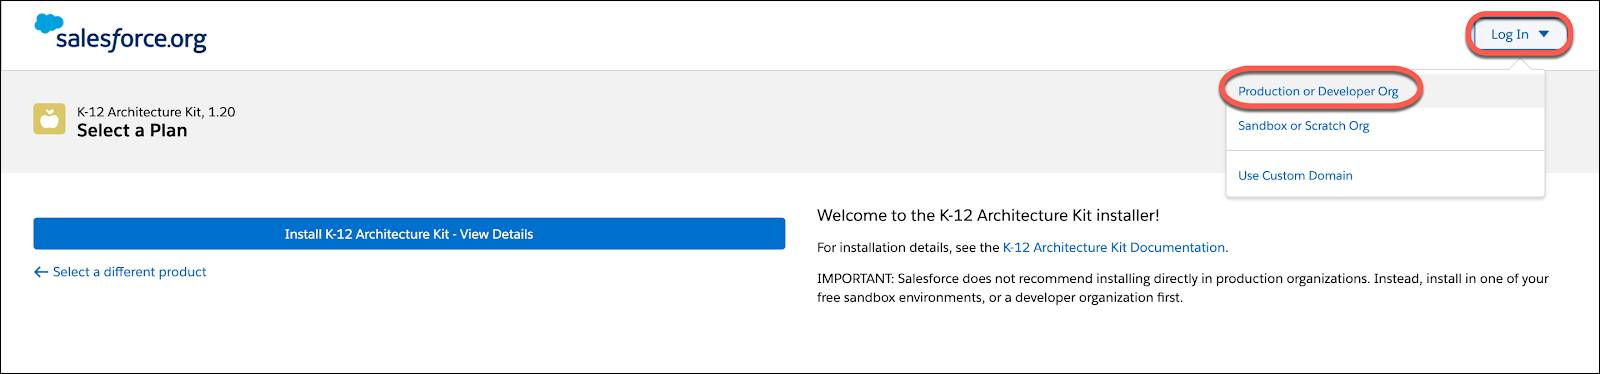 K-12 Architecture Kit installer welcome page. Click the Login button to select an org type.